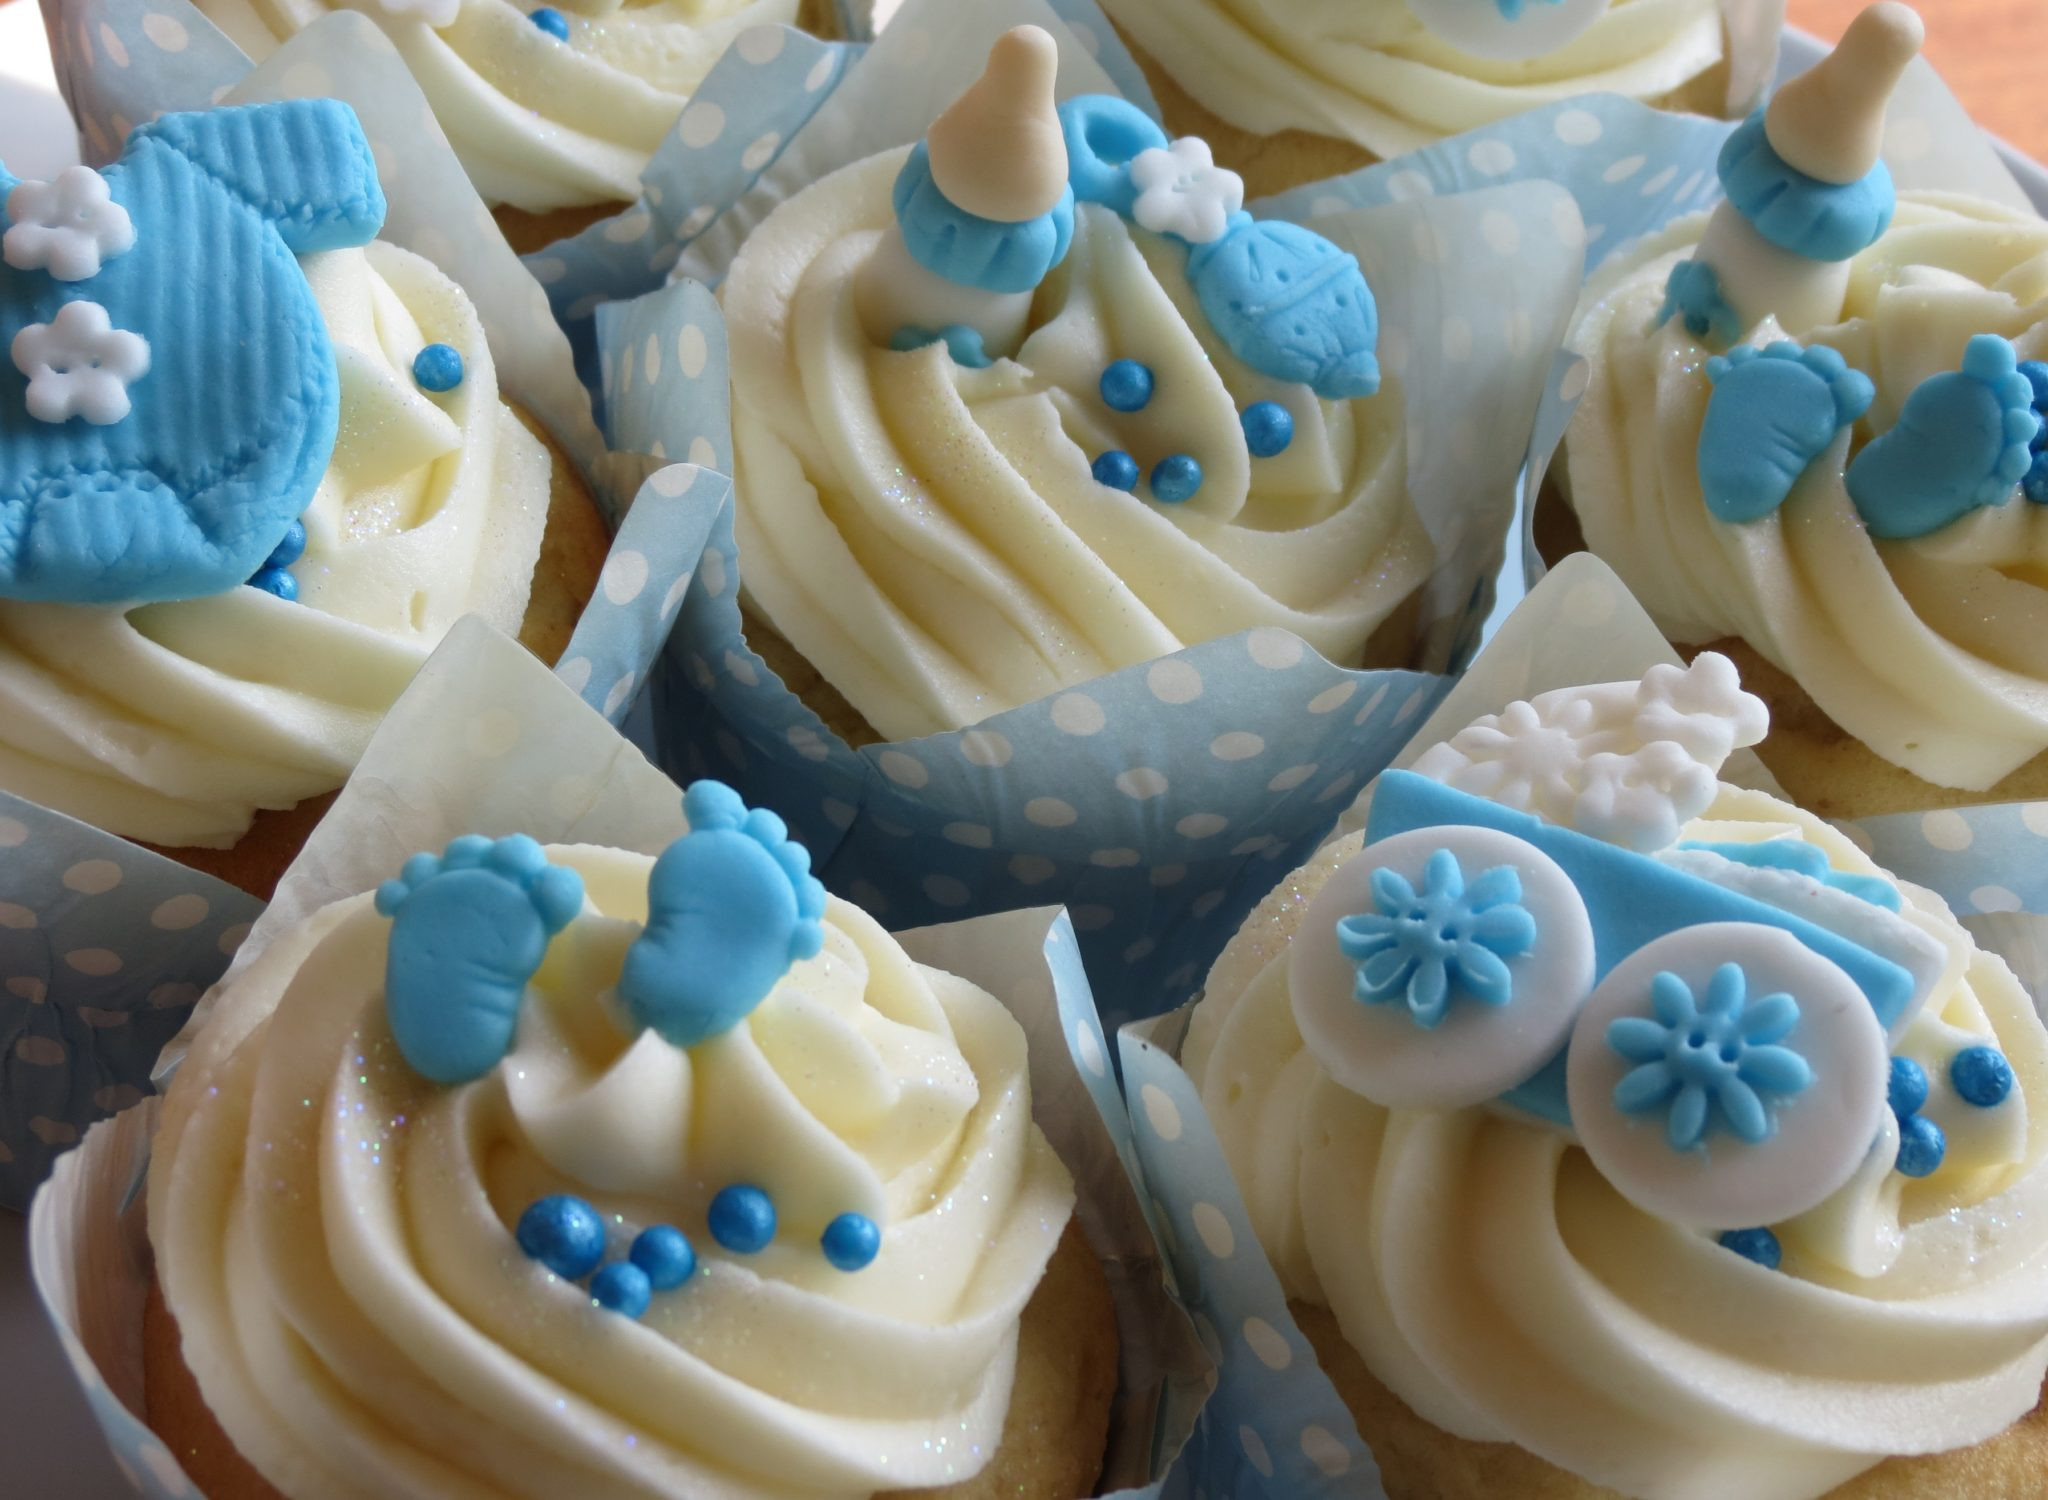 Baby Shower Cupcakes  70 Baby Shower Cakes and Cupcakes Ideas